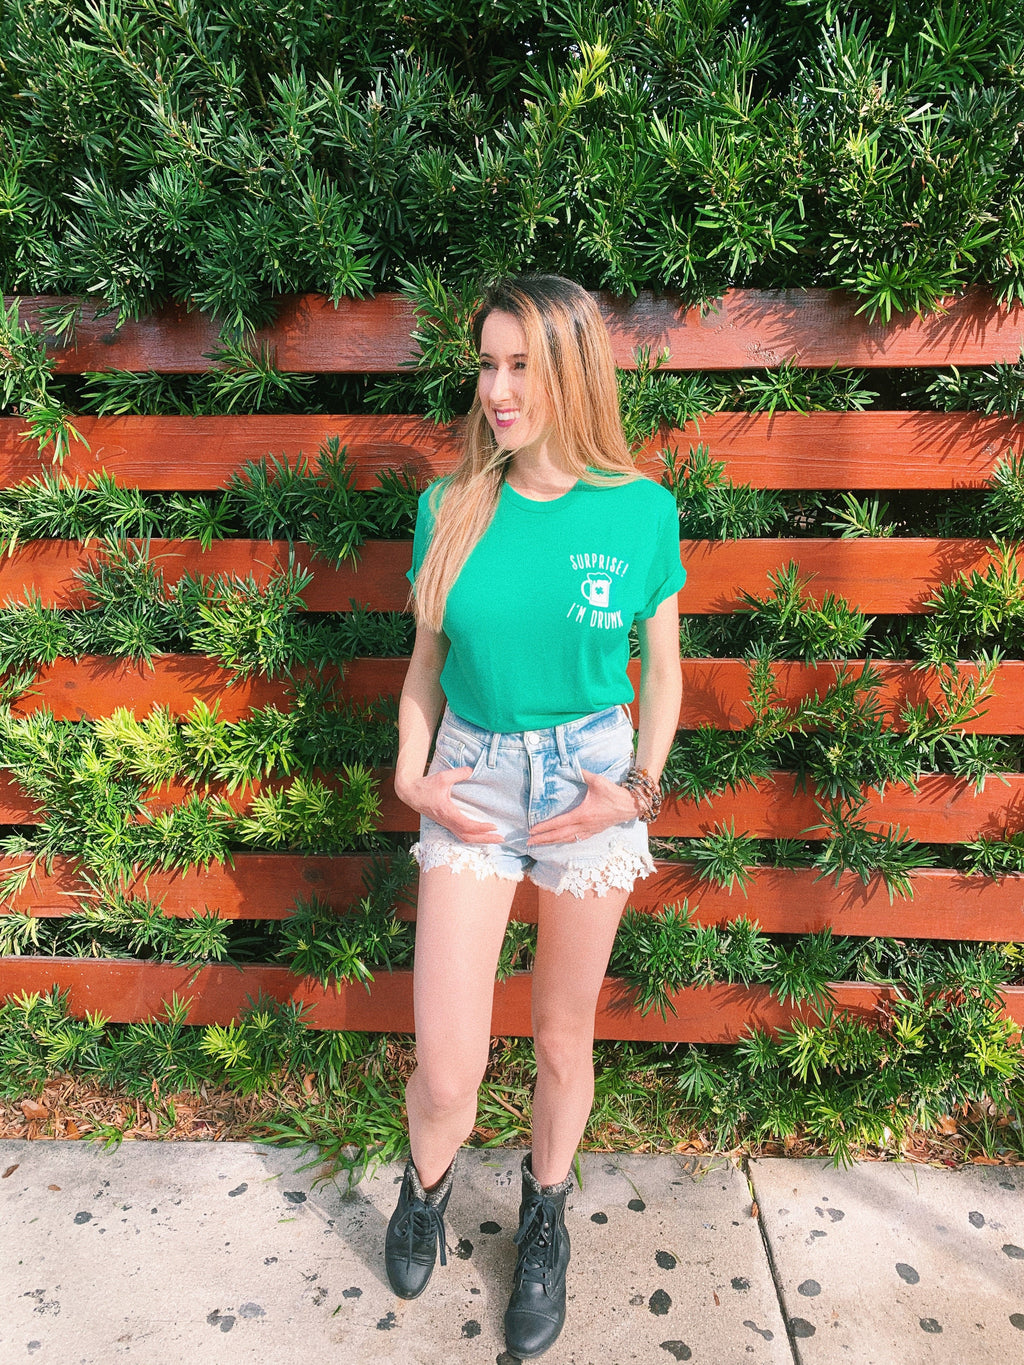 Surprise everyone this St. Patrick's Day and let them know that you ARE indeed a little drunk! This funny St. Patrick's Day shirt is a great shirt to show that not only are you there to have a good time but you're also ready to get shamrocked.... ( if you're not already!)